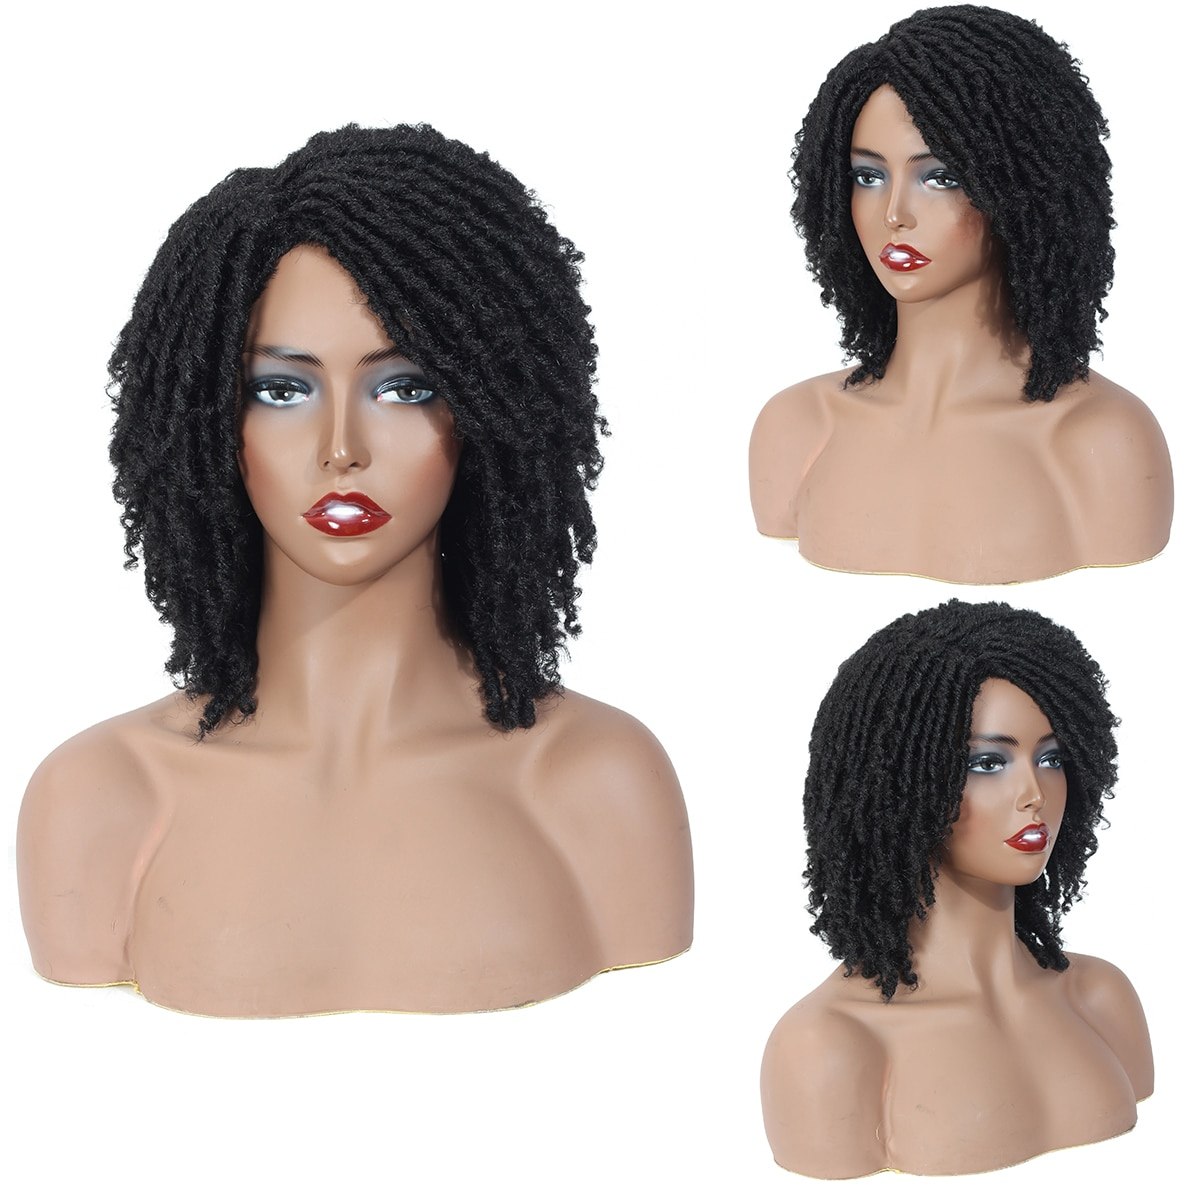 Dreadlock Wigs for Black Women and men Short Twist Wigs Soft Synthetic Wigs with Curly EndsShort Afro Wigs Dreadlocks Cheap